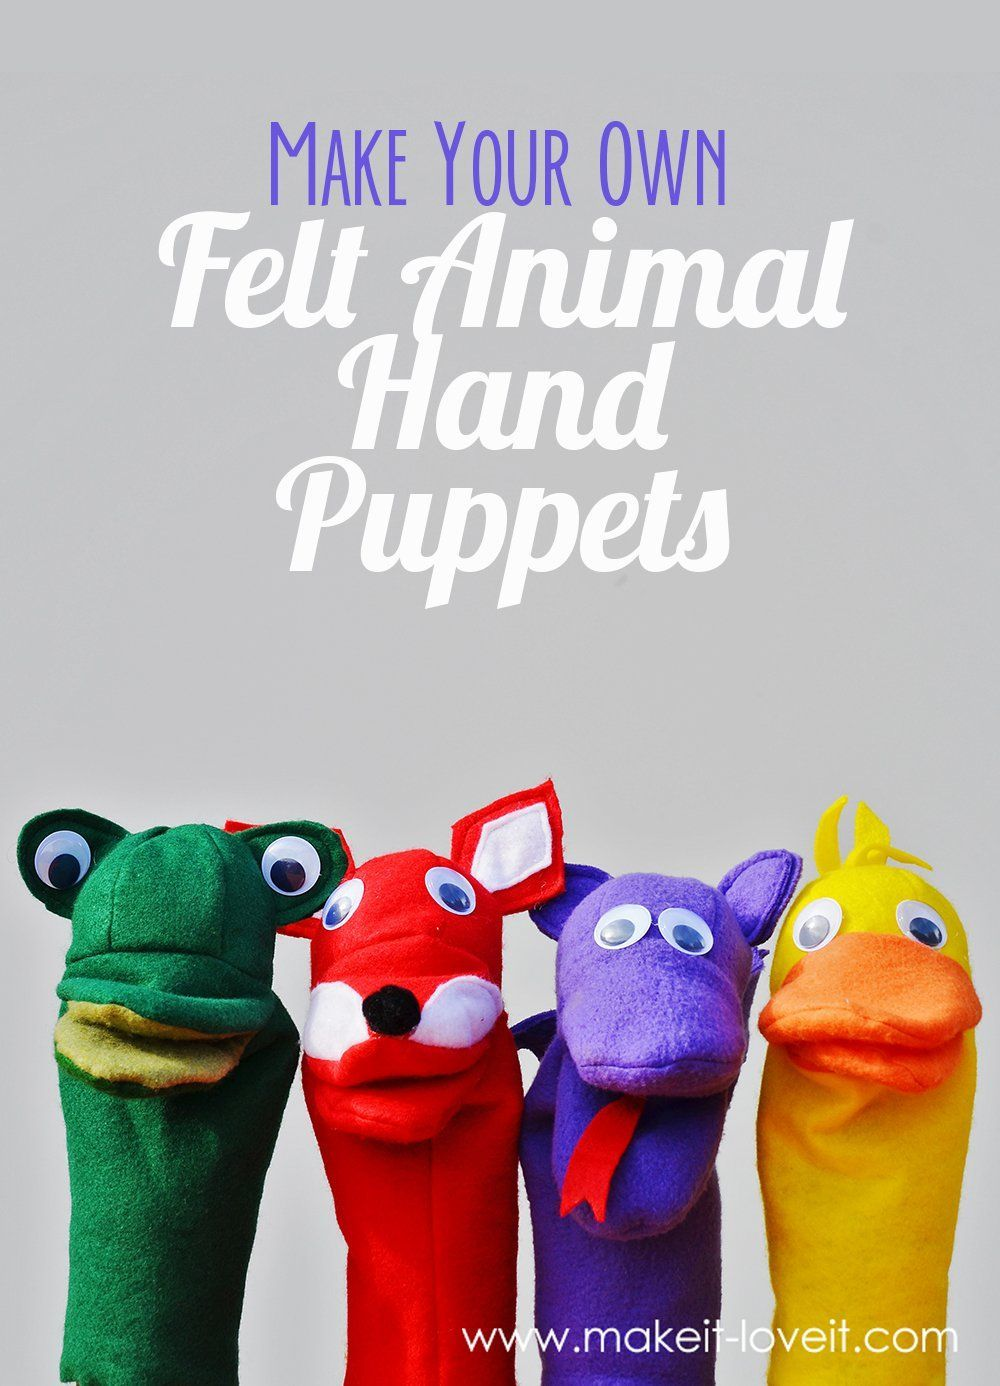 felt animal hand puppets - free pdf templates and step by step photo